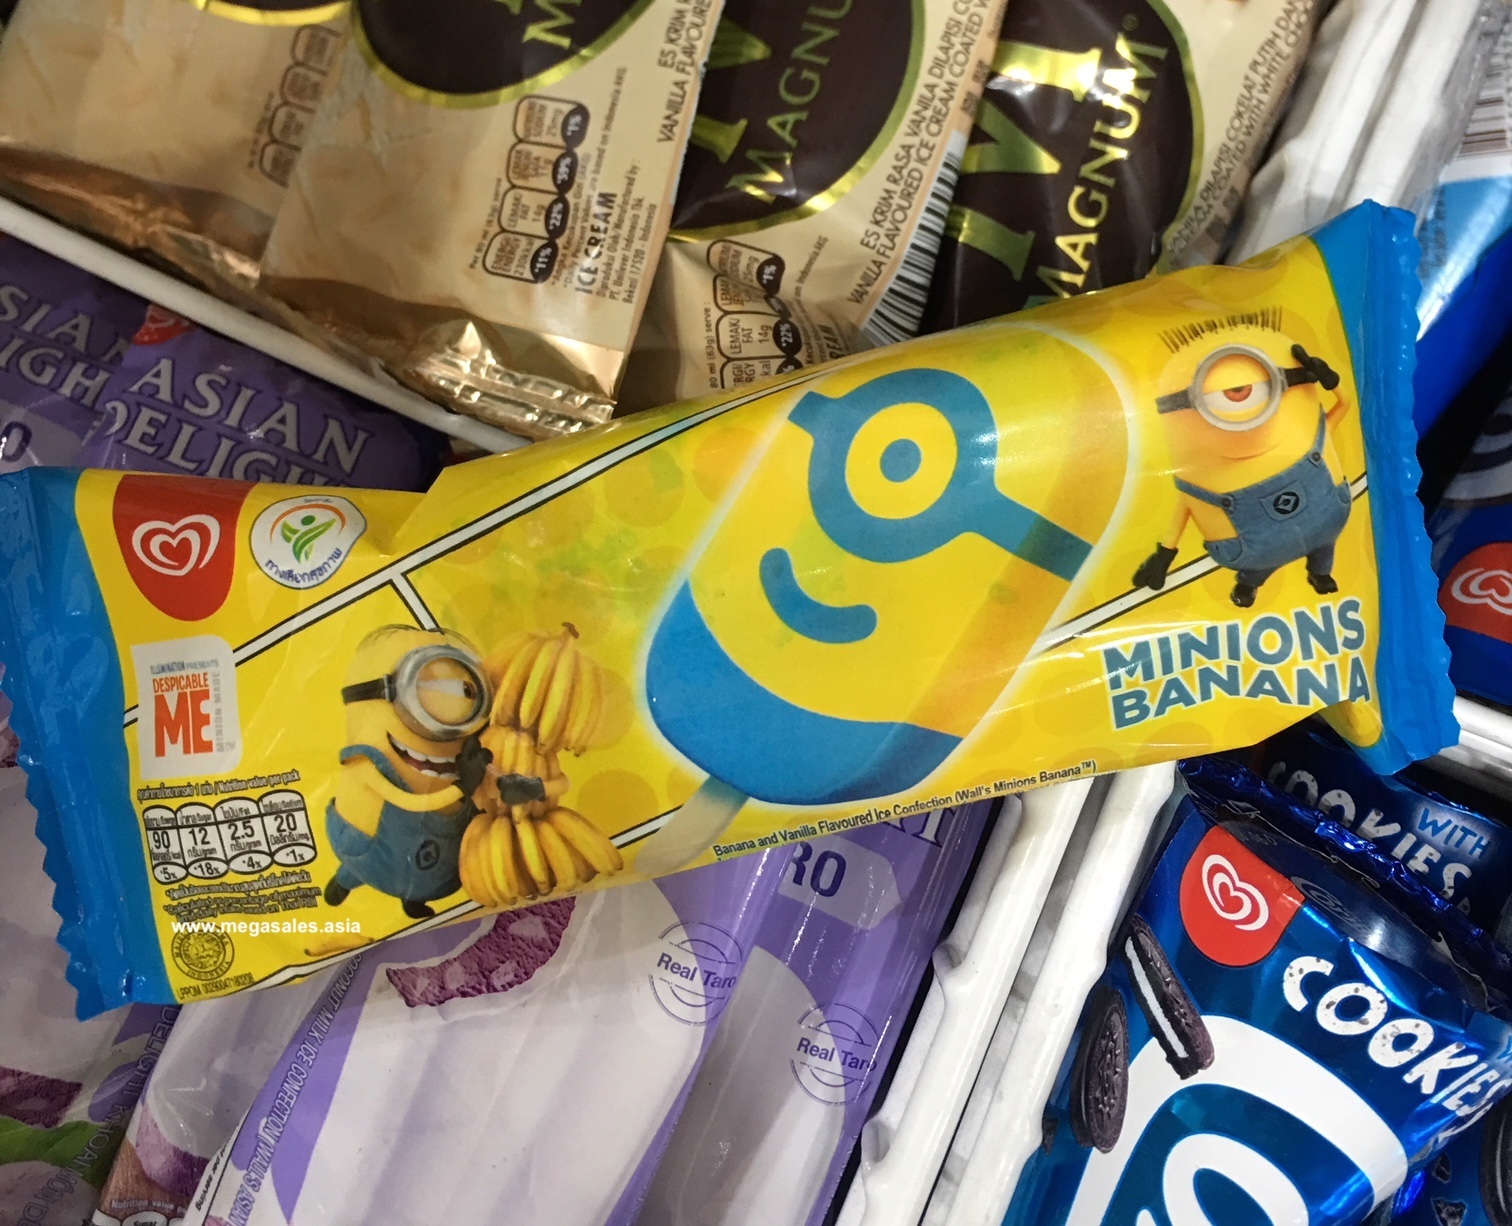 Wall's Malaysia is Offering a Free Minions Ice-Cream for One Day only